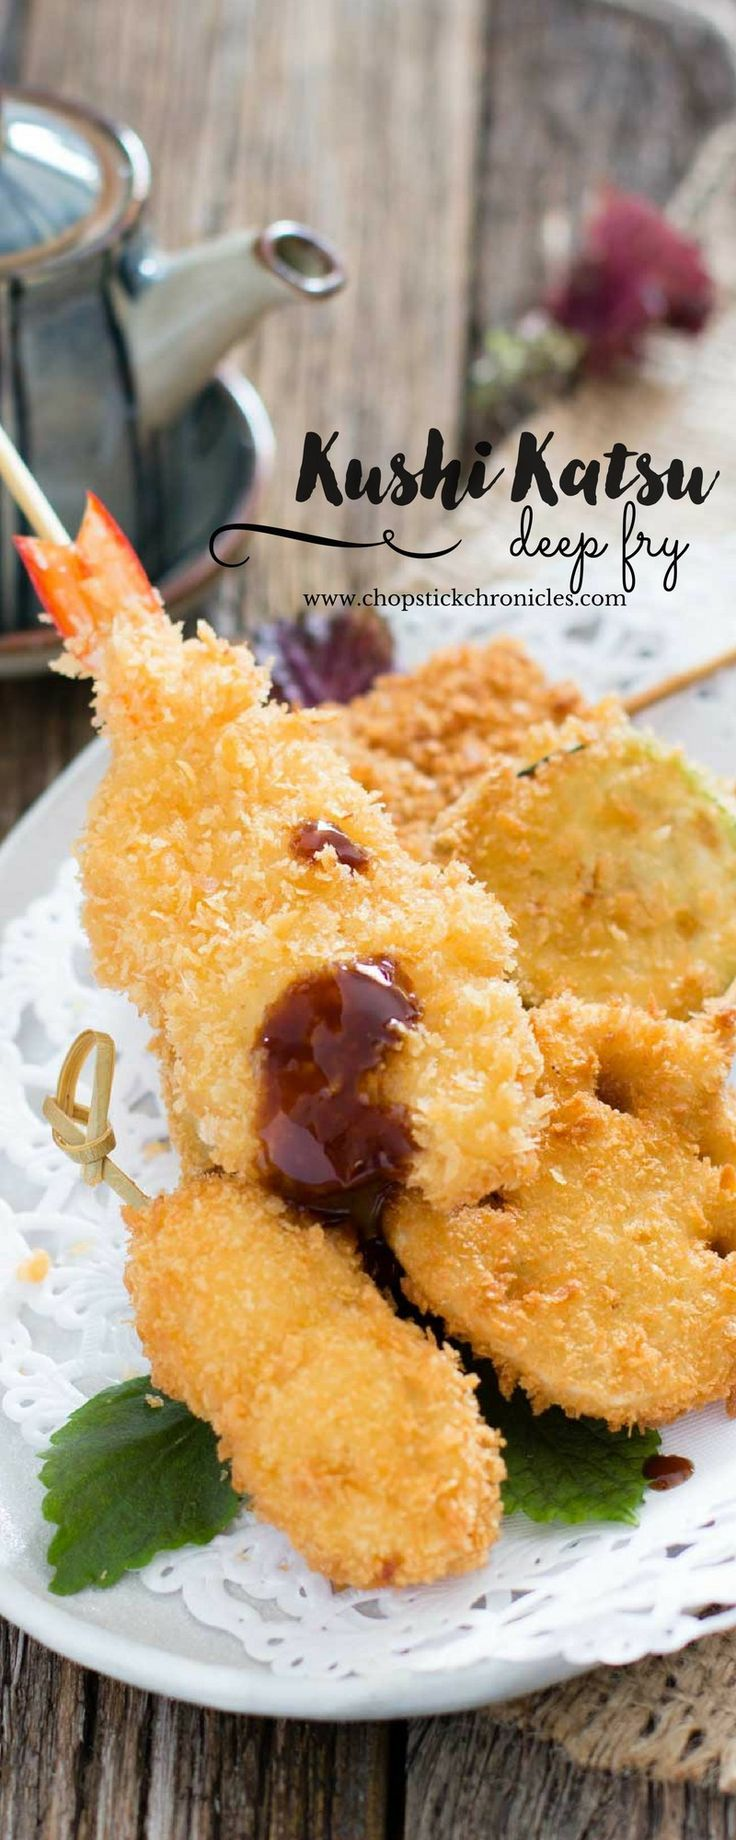 Kushi Katsu is variety of fresh ingredients such as sea food, meat and vegetables, skewered and panko crumbed then deep fried.